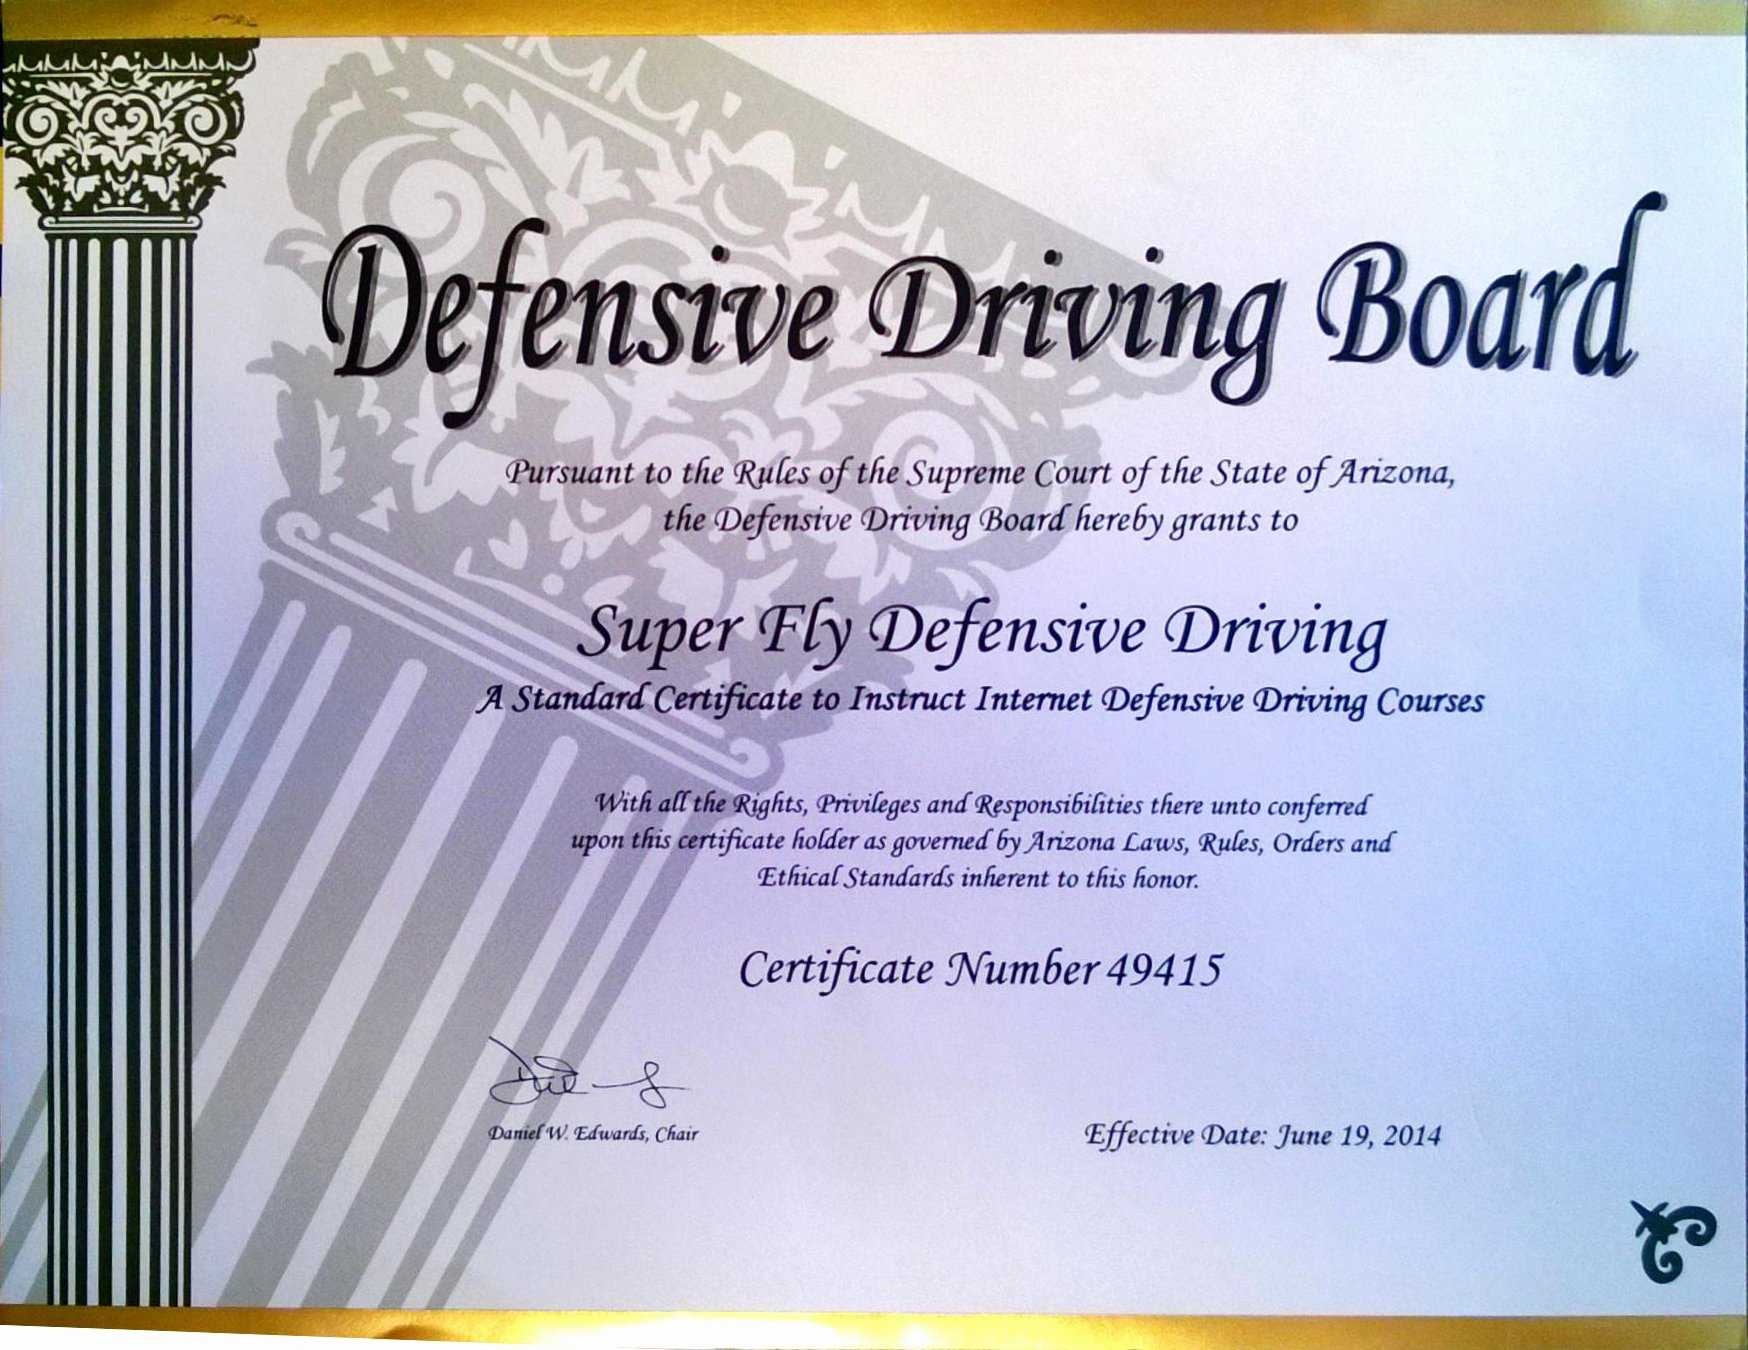 30 Defensive Driving Certificate Template | Pryncepality With Regard To Safe Driving Certificate Template